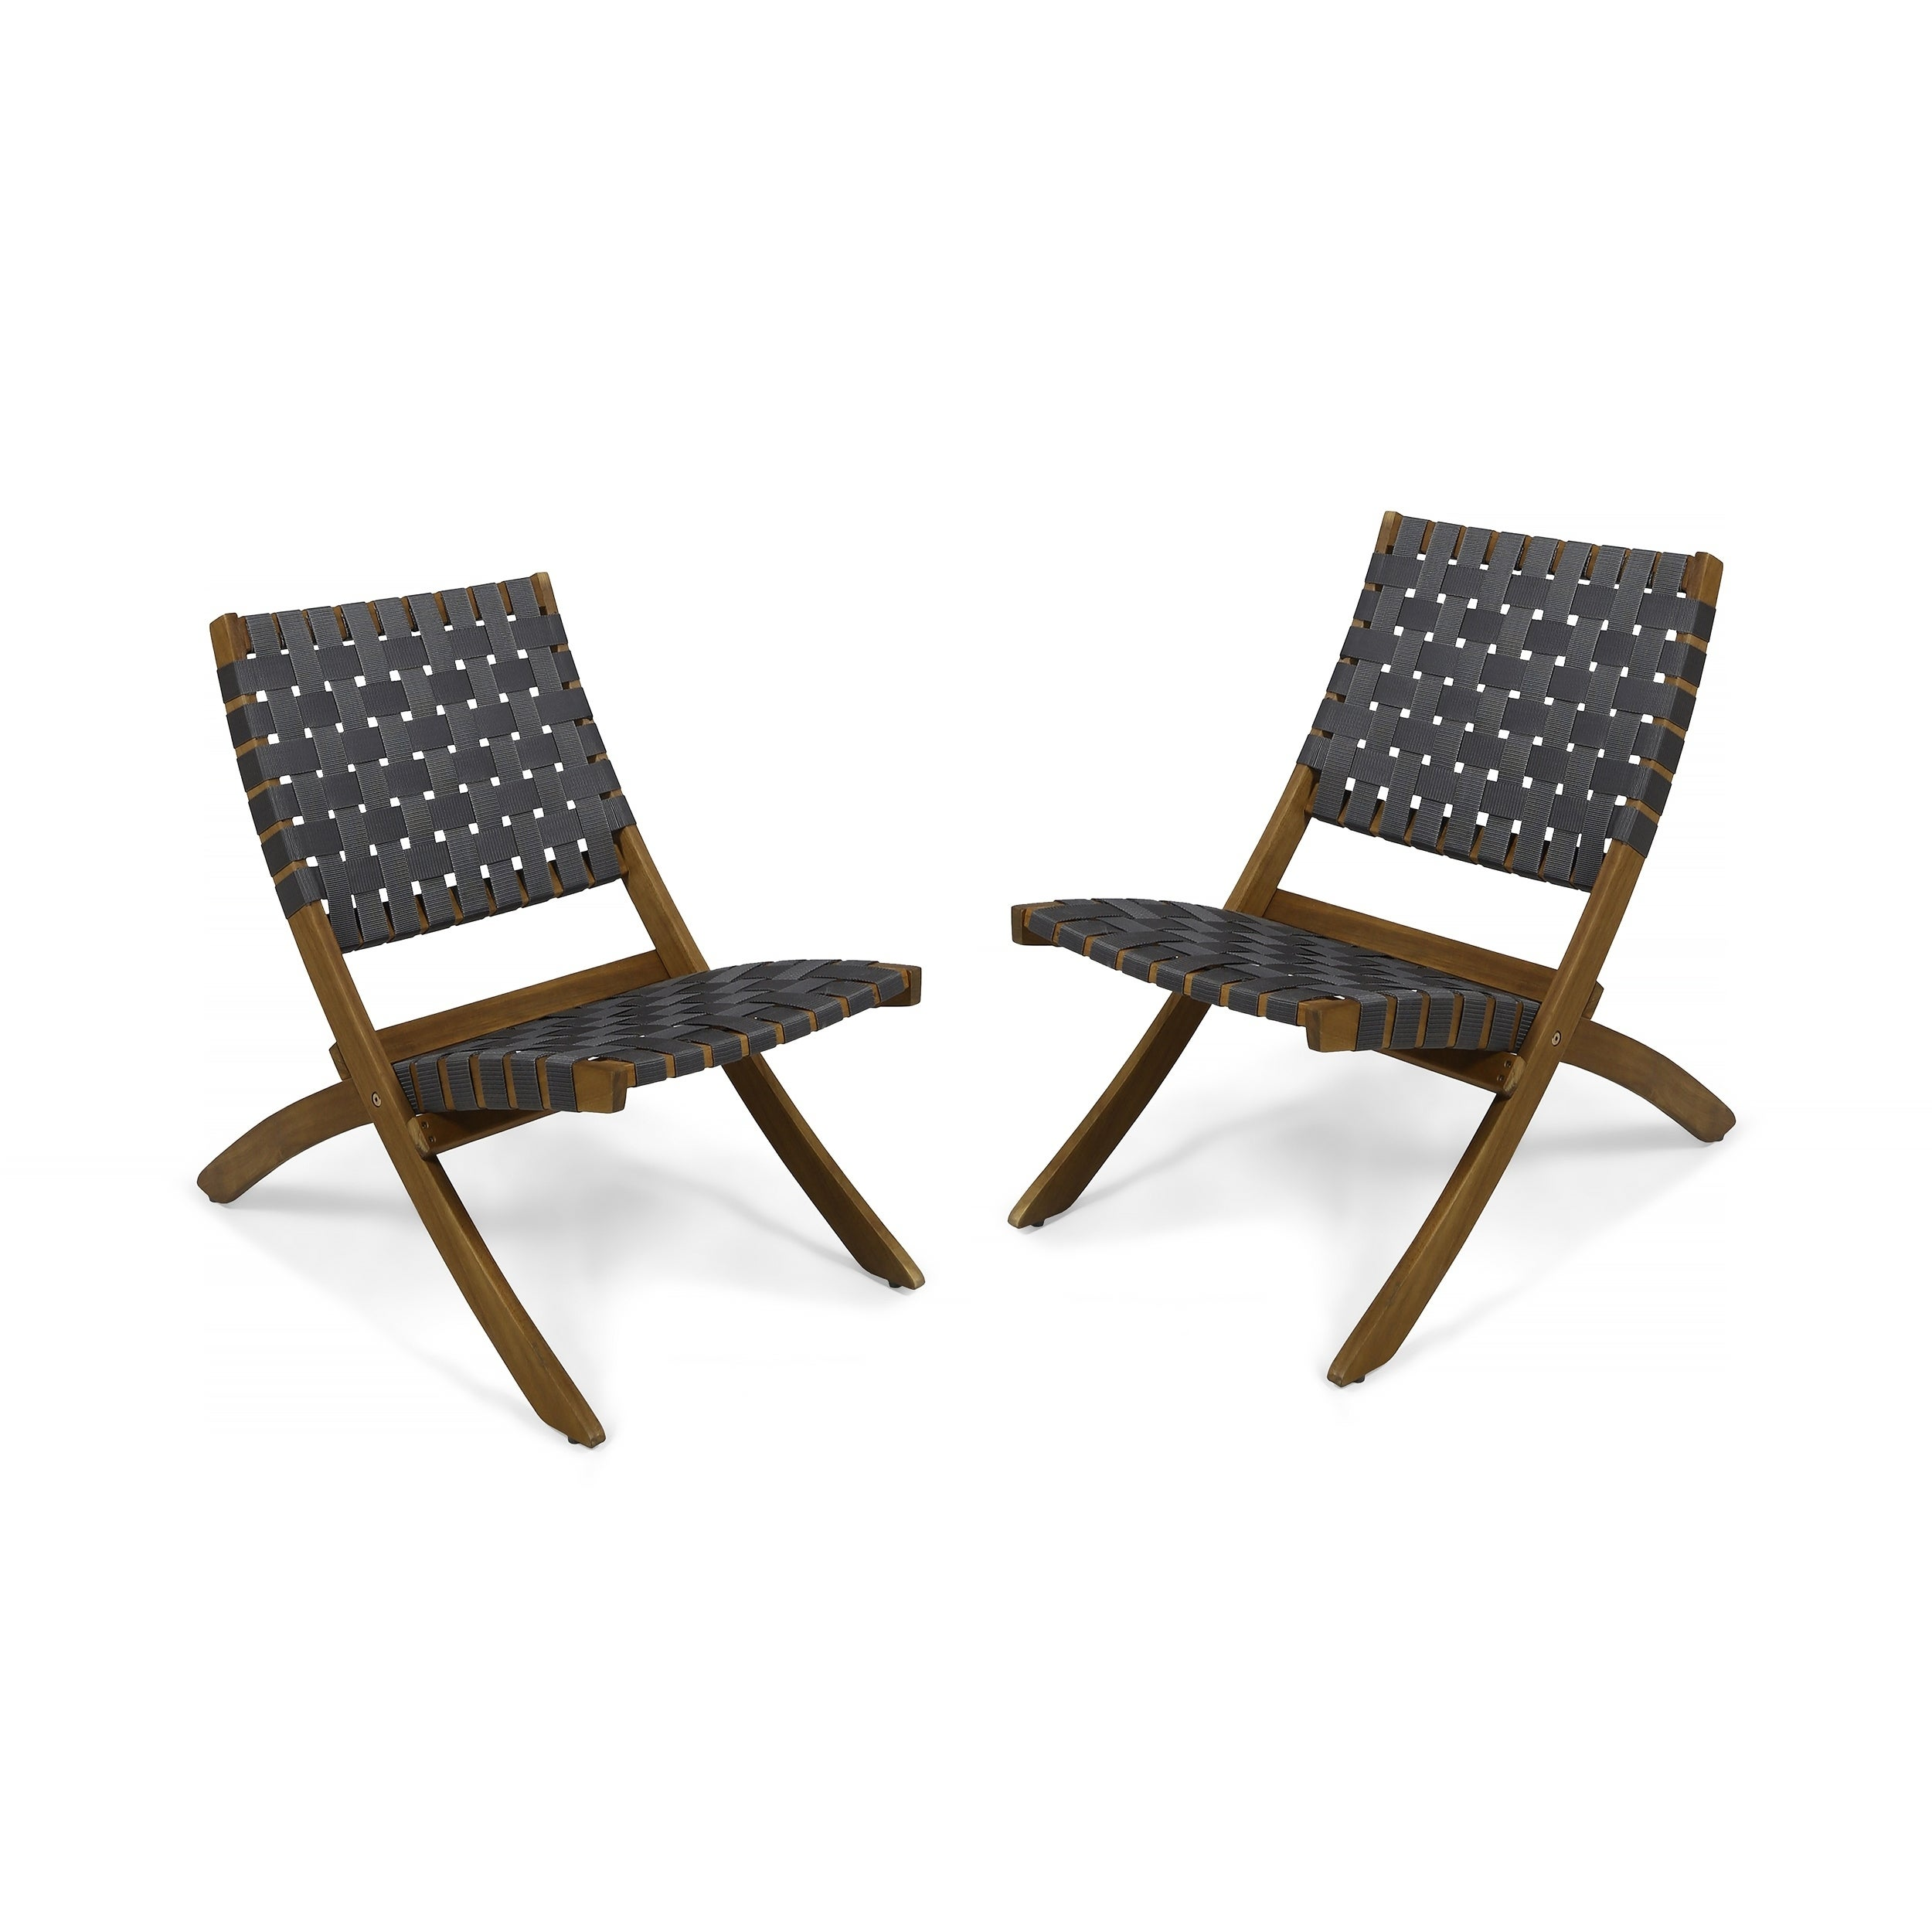 Huntsville Outdoor Acacia Wood Foldable Chairs Set Of 2 By Christopher Knight Home